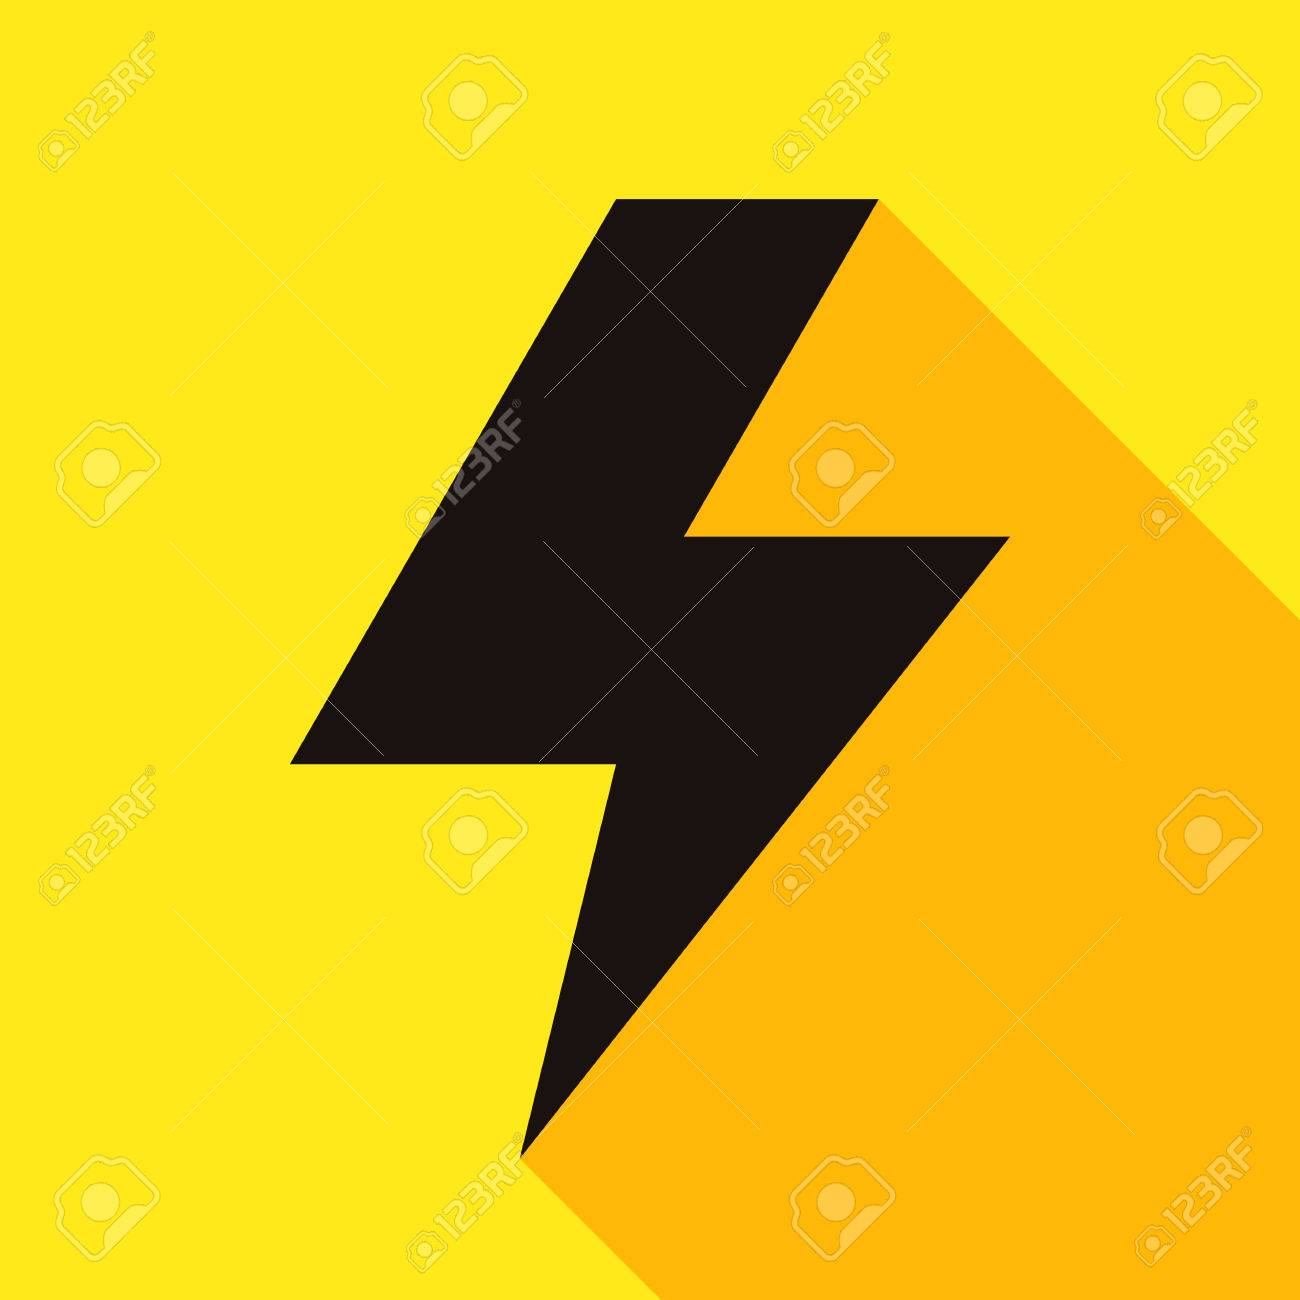 Lightning Bolt Icon On Yellow Background Royalty Free Cliparts Vectors And Stock Illustration Image 32748444